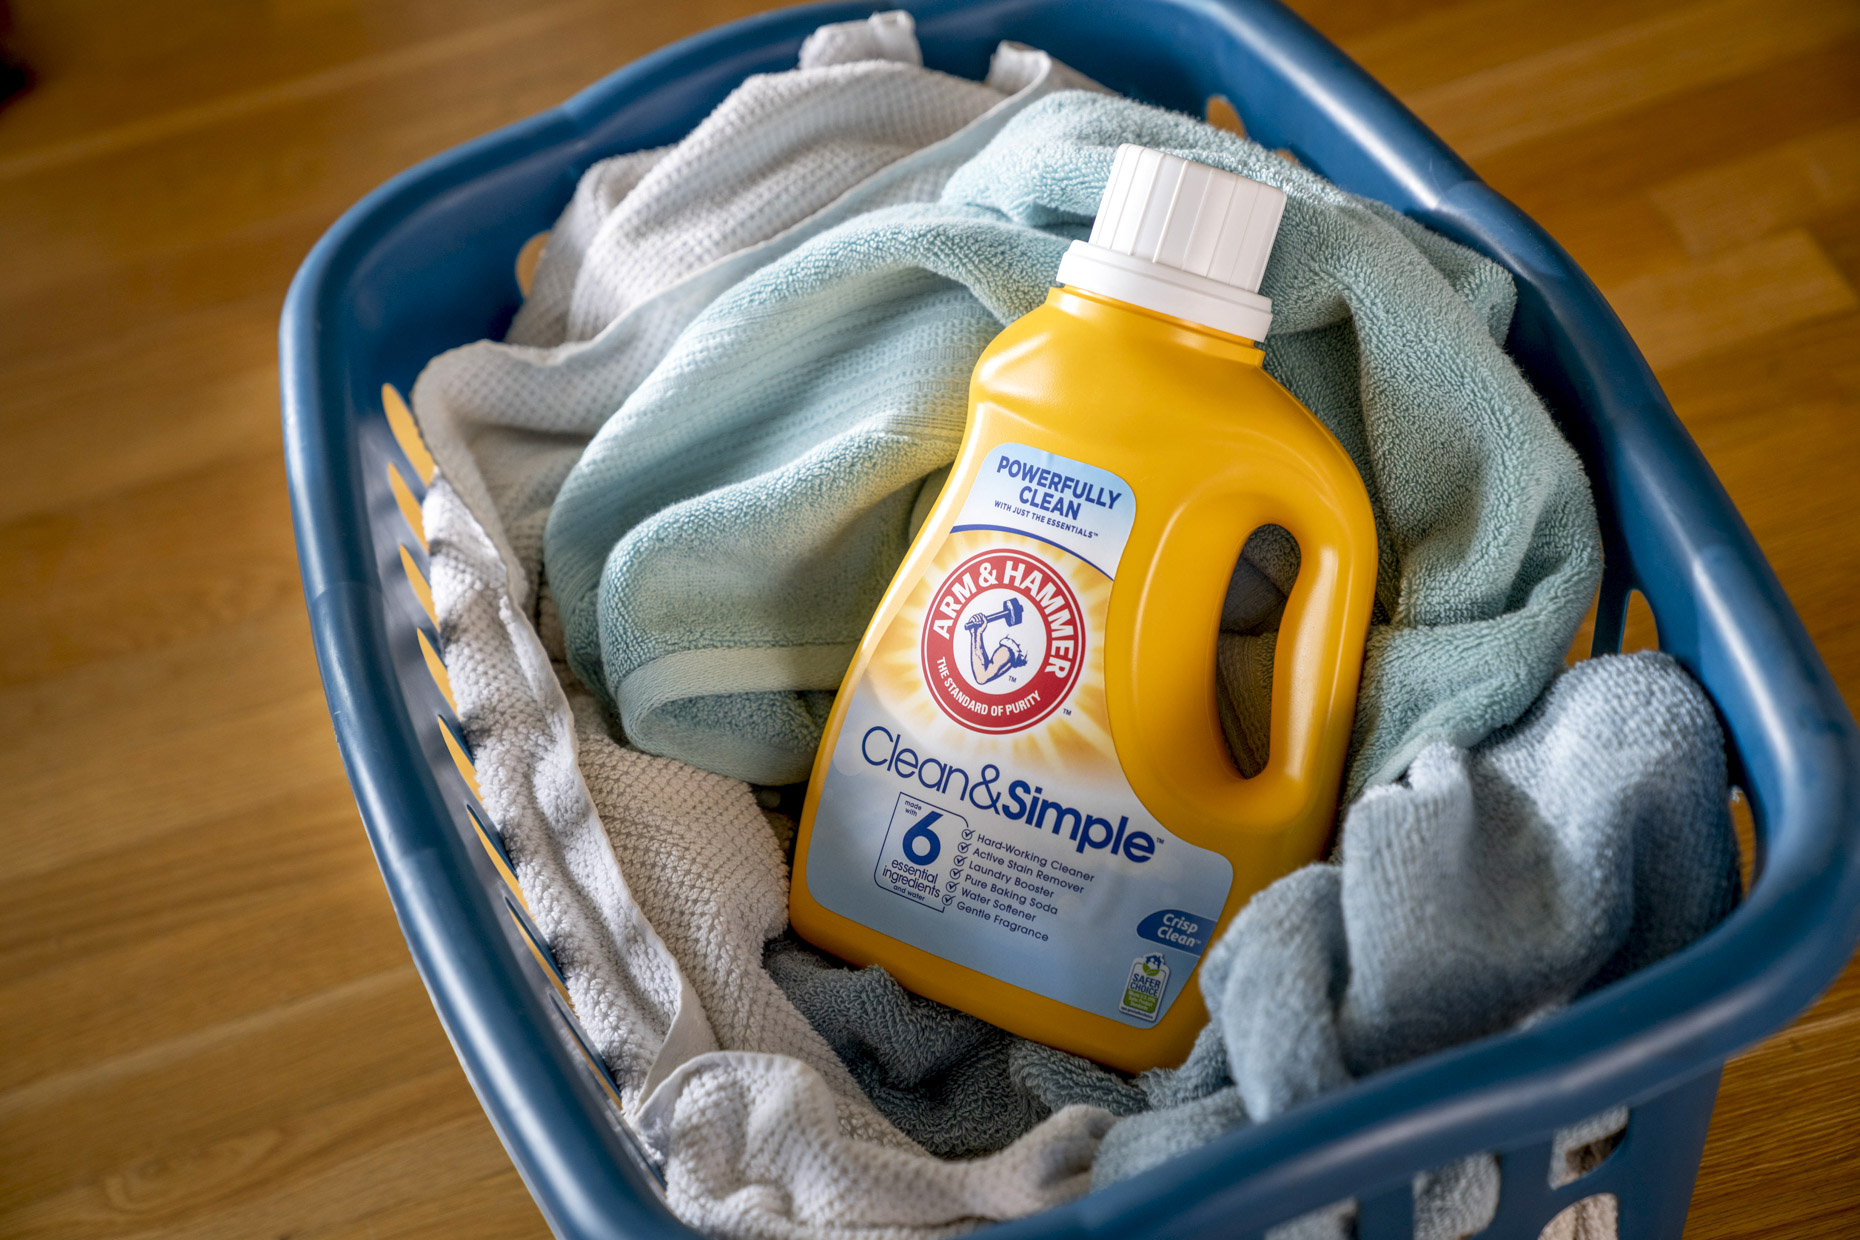 Arm and Hammer laundry soap in basket of towels